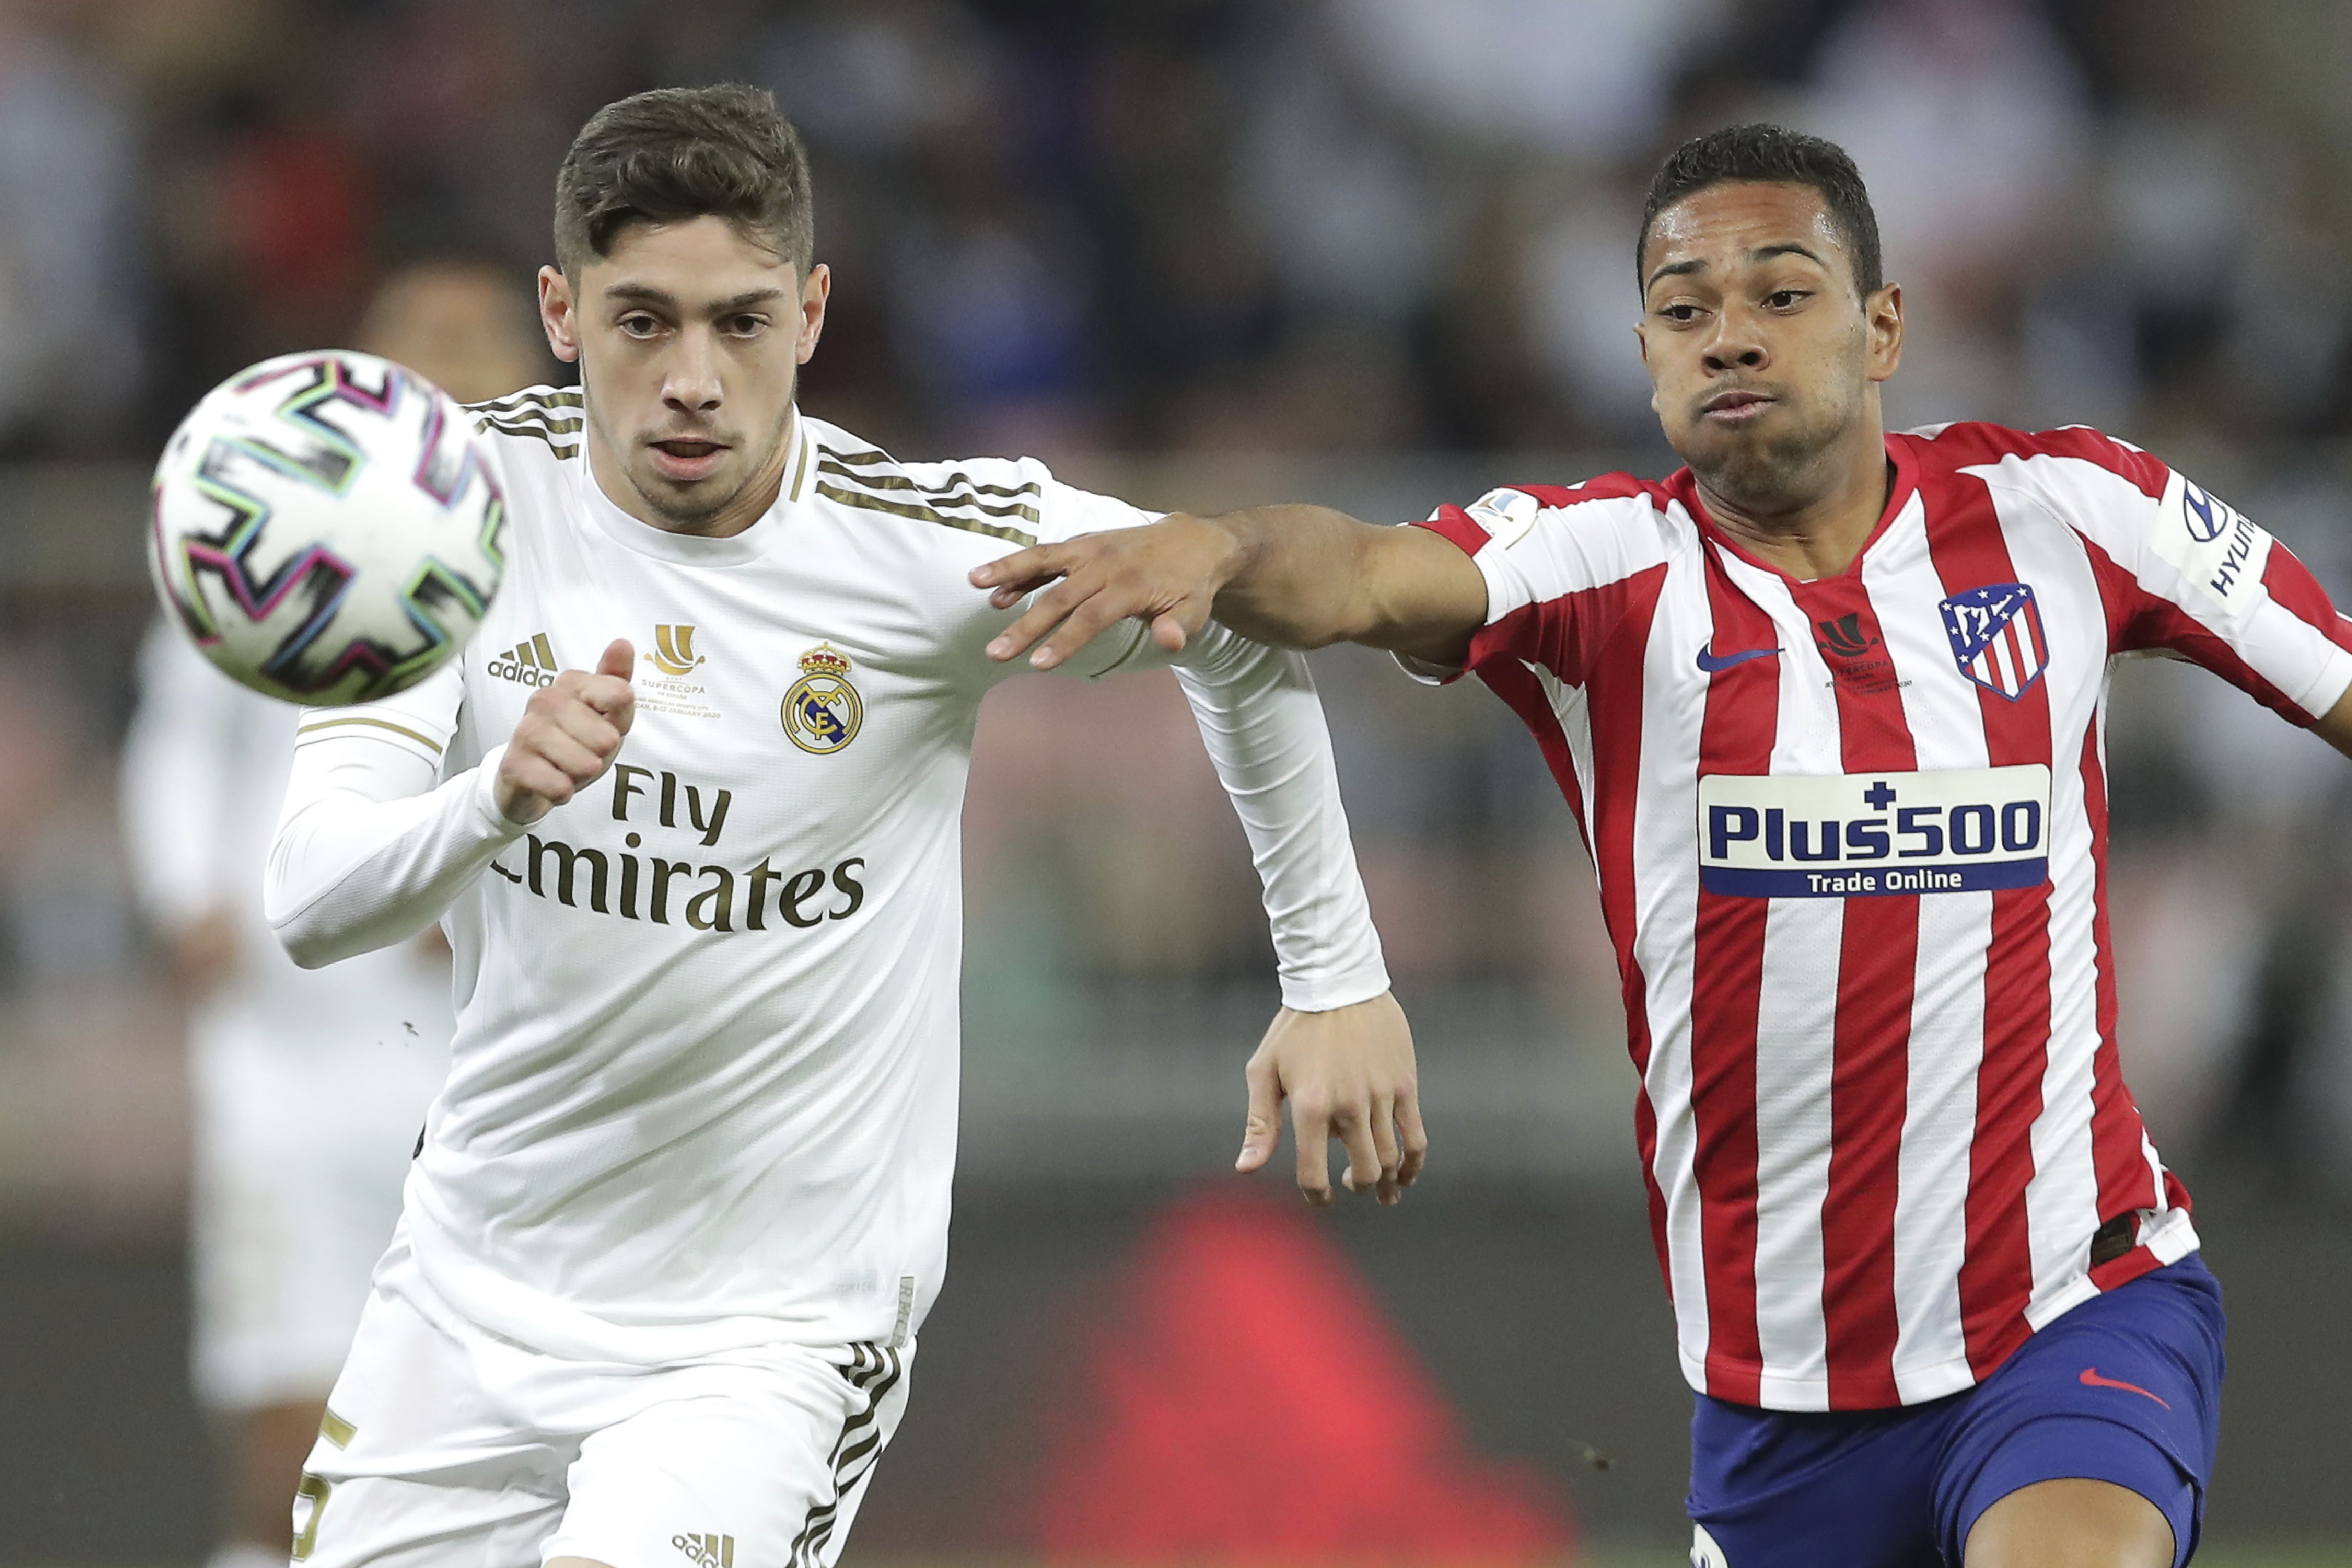 watch atletico madrid vs real madrid live online free